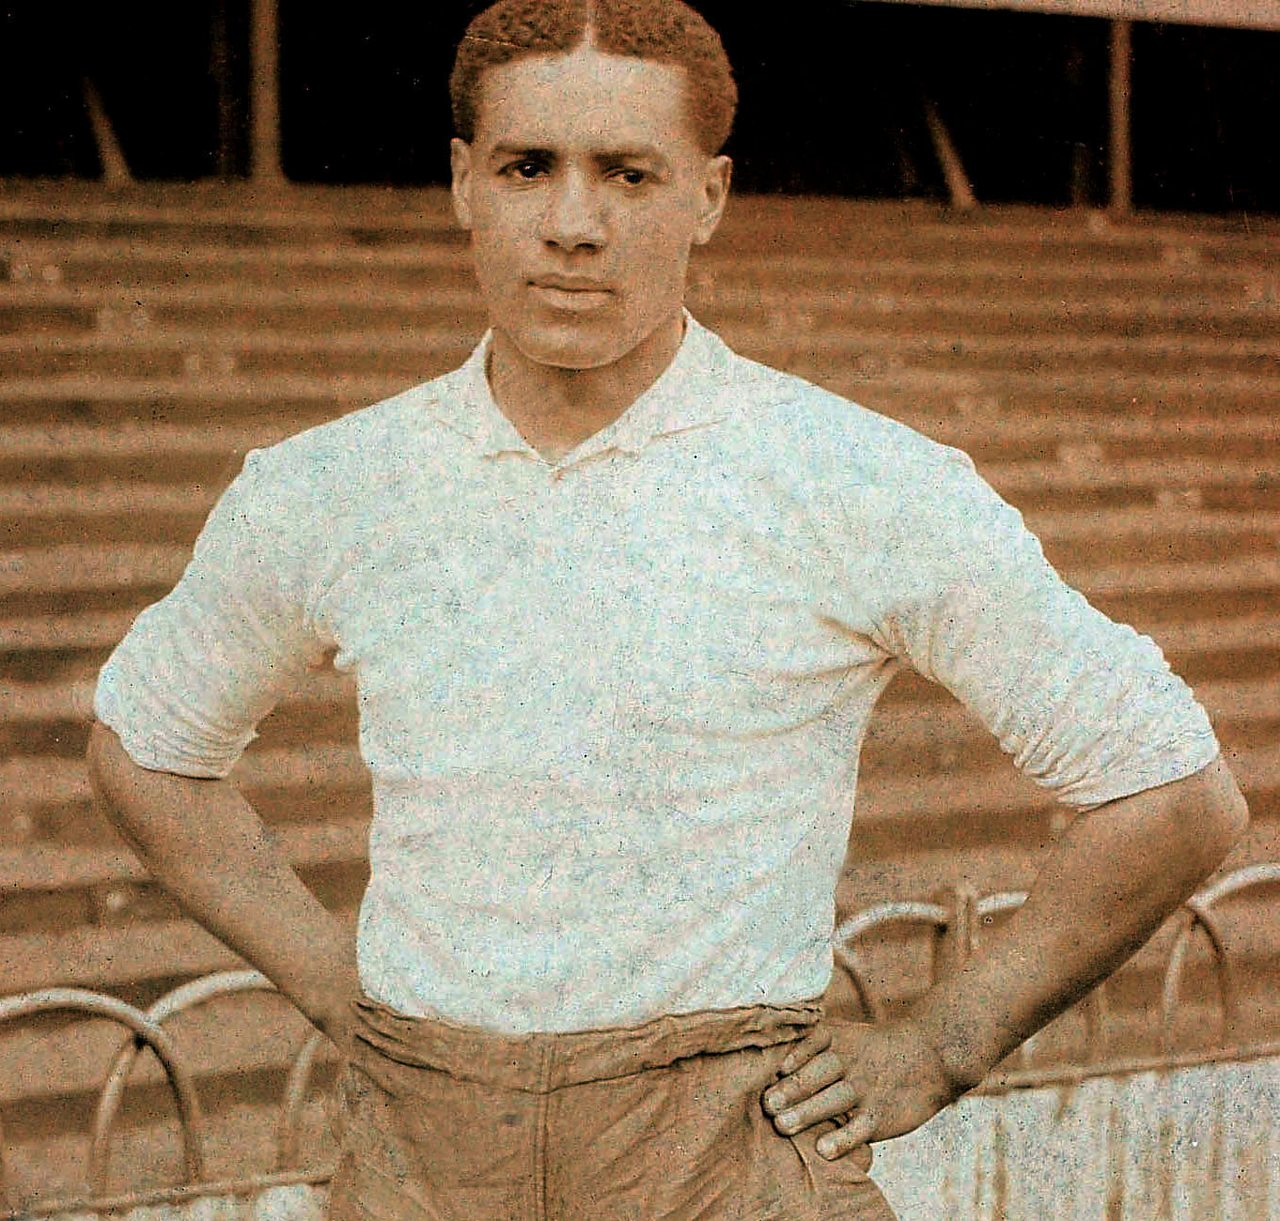 Photograph of Walter Tull at a football ground in the early 1900s